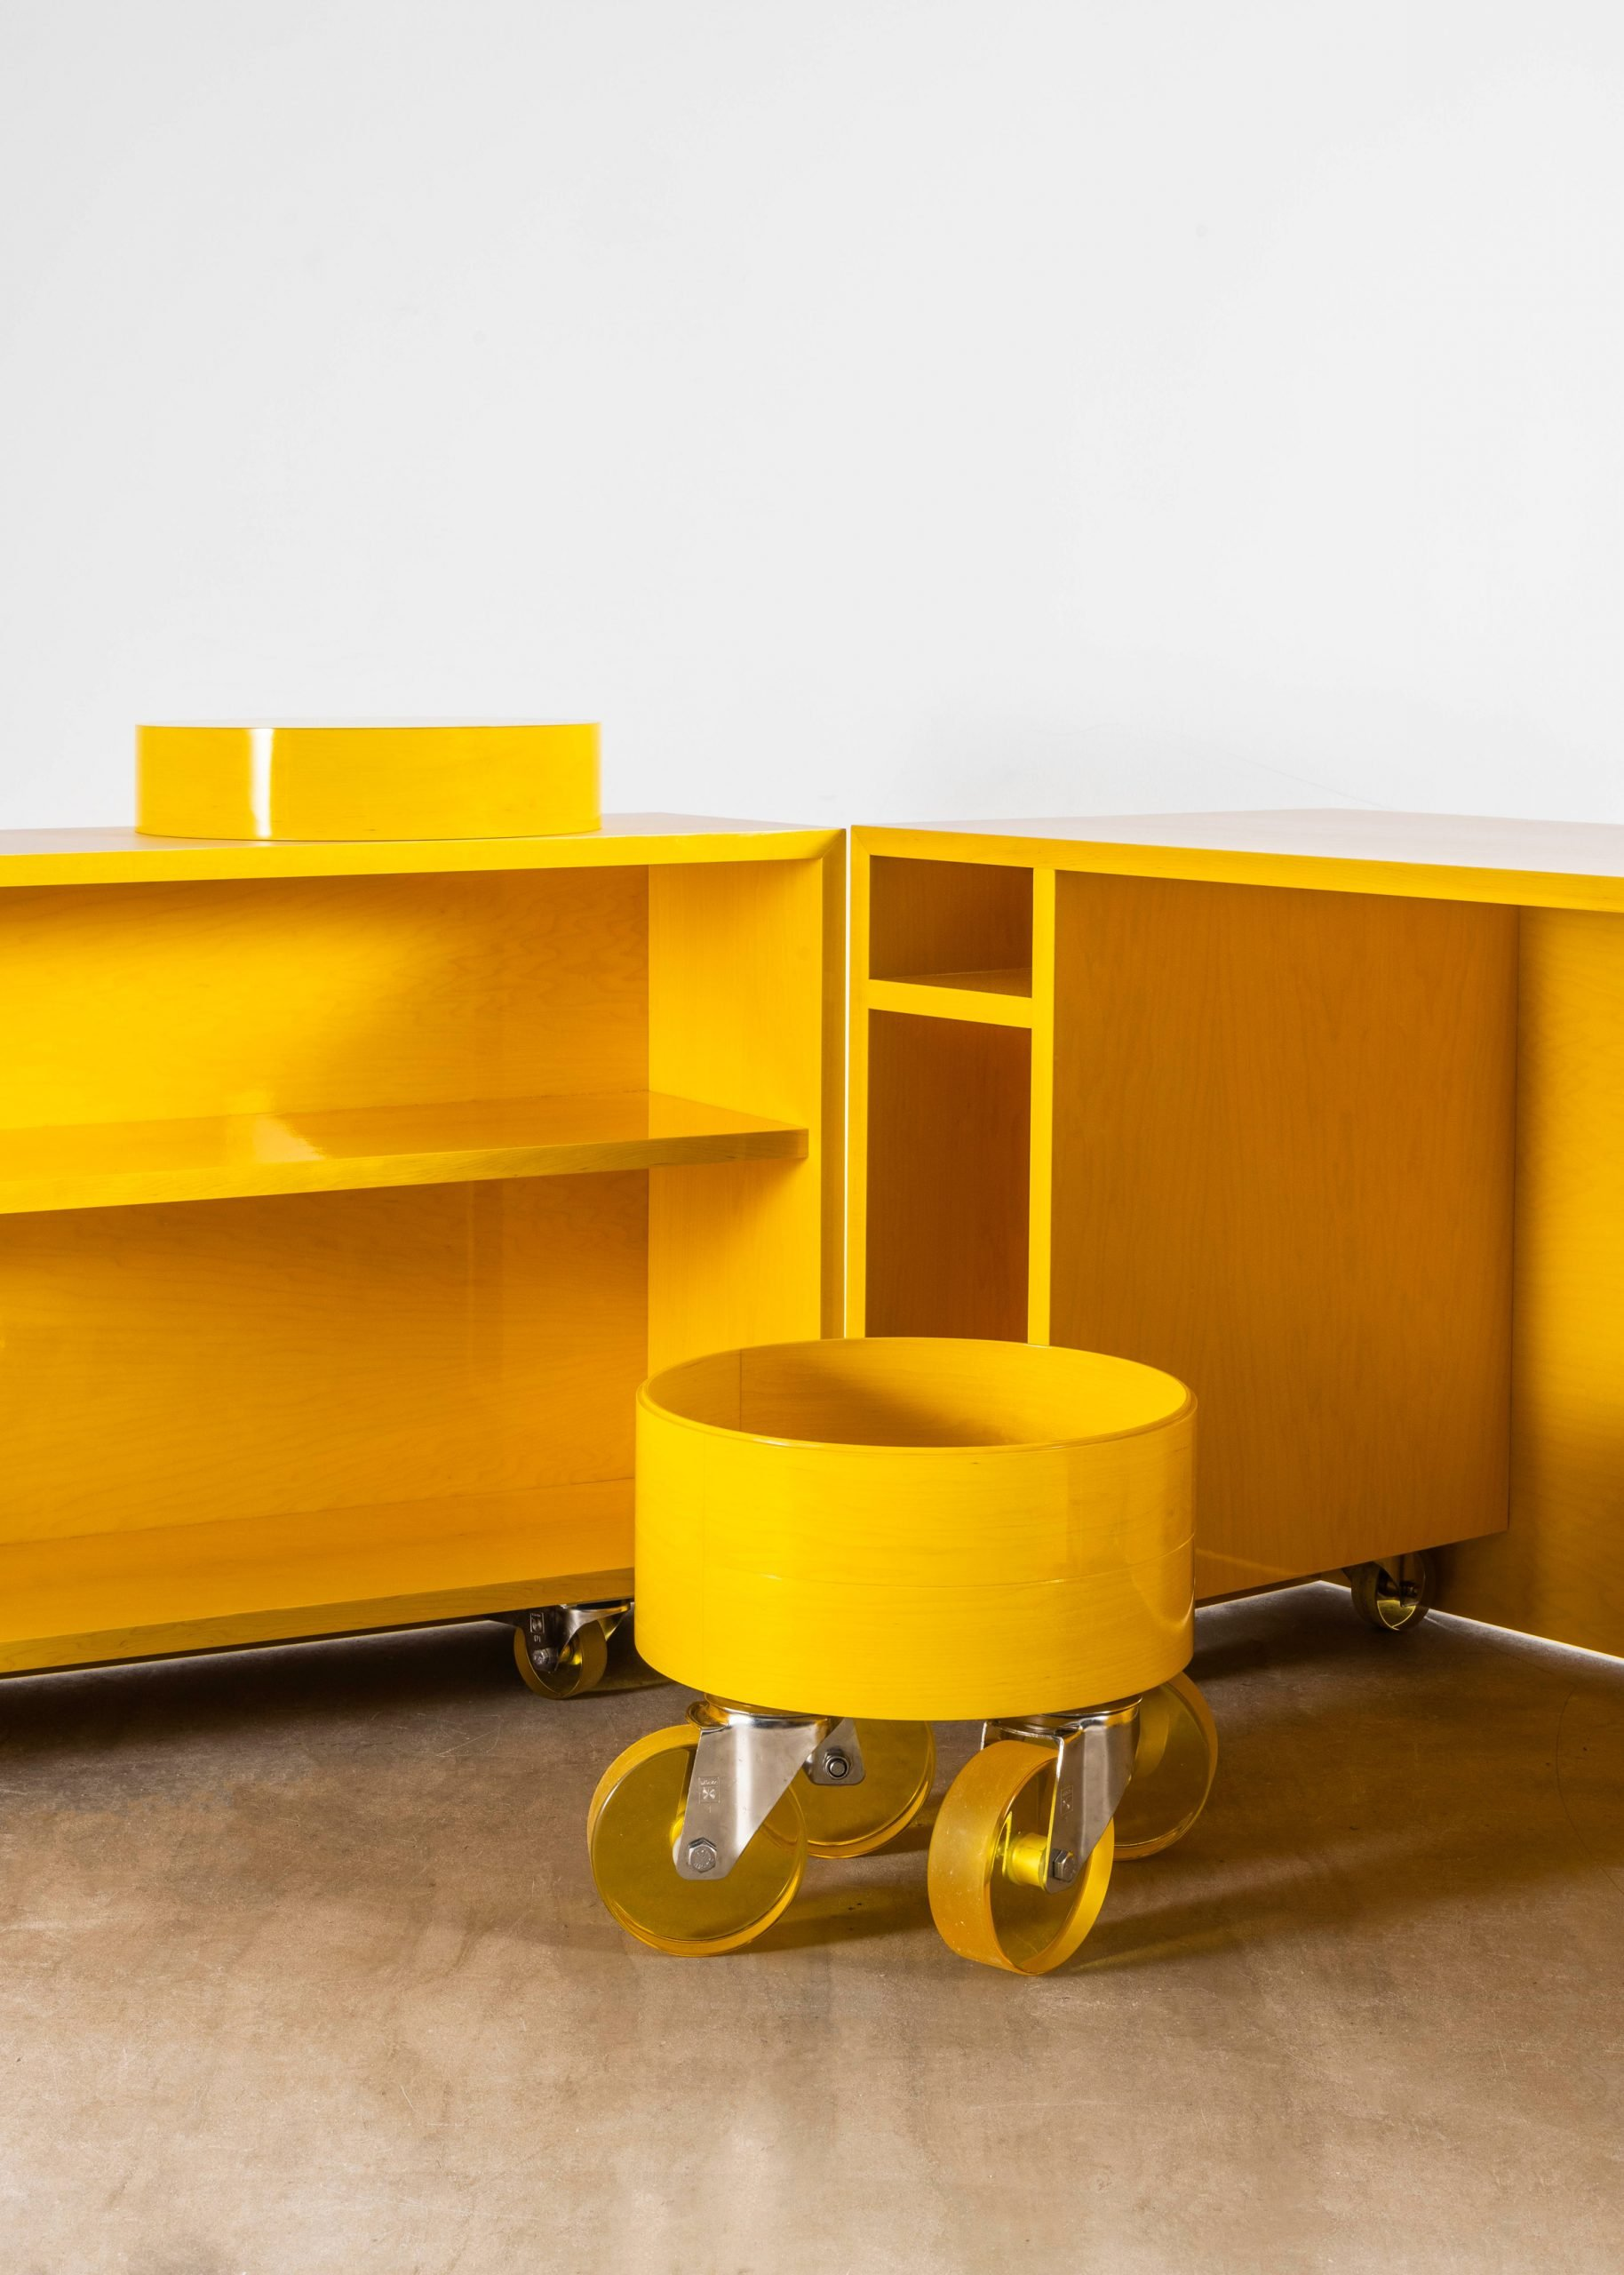 The interior of Sabine Marcelis's Candy Cubicle desk is bright yellow